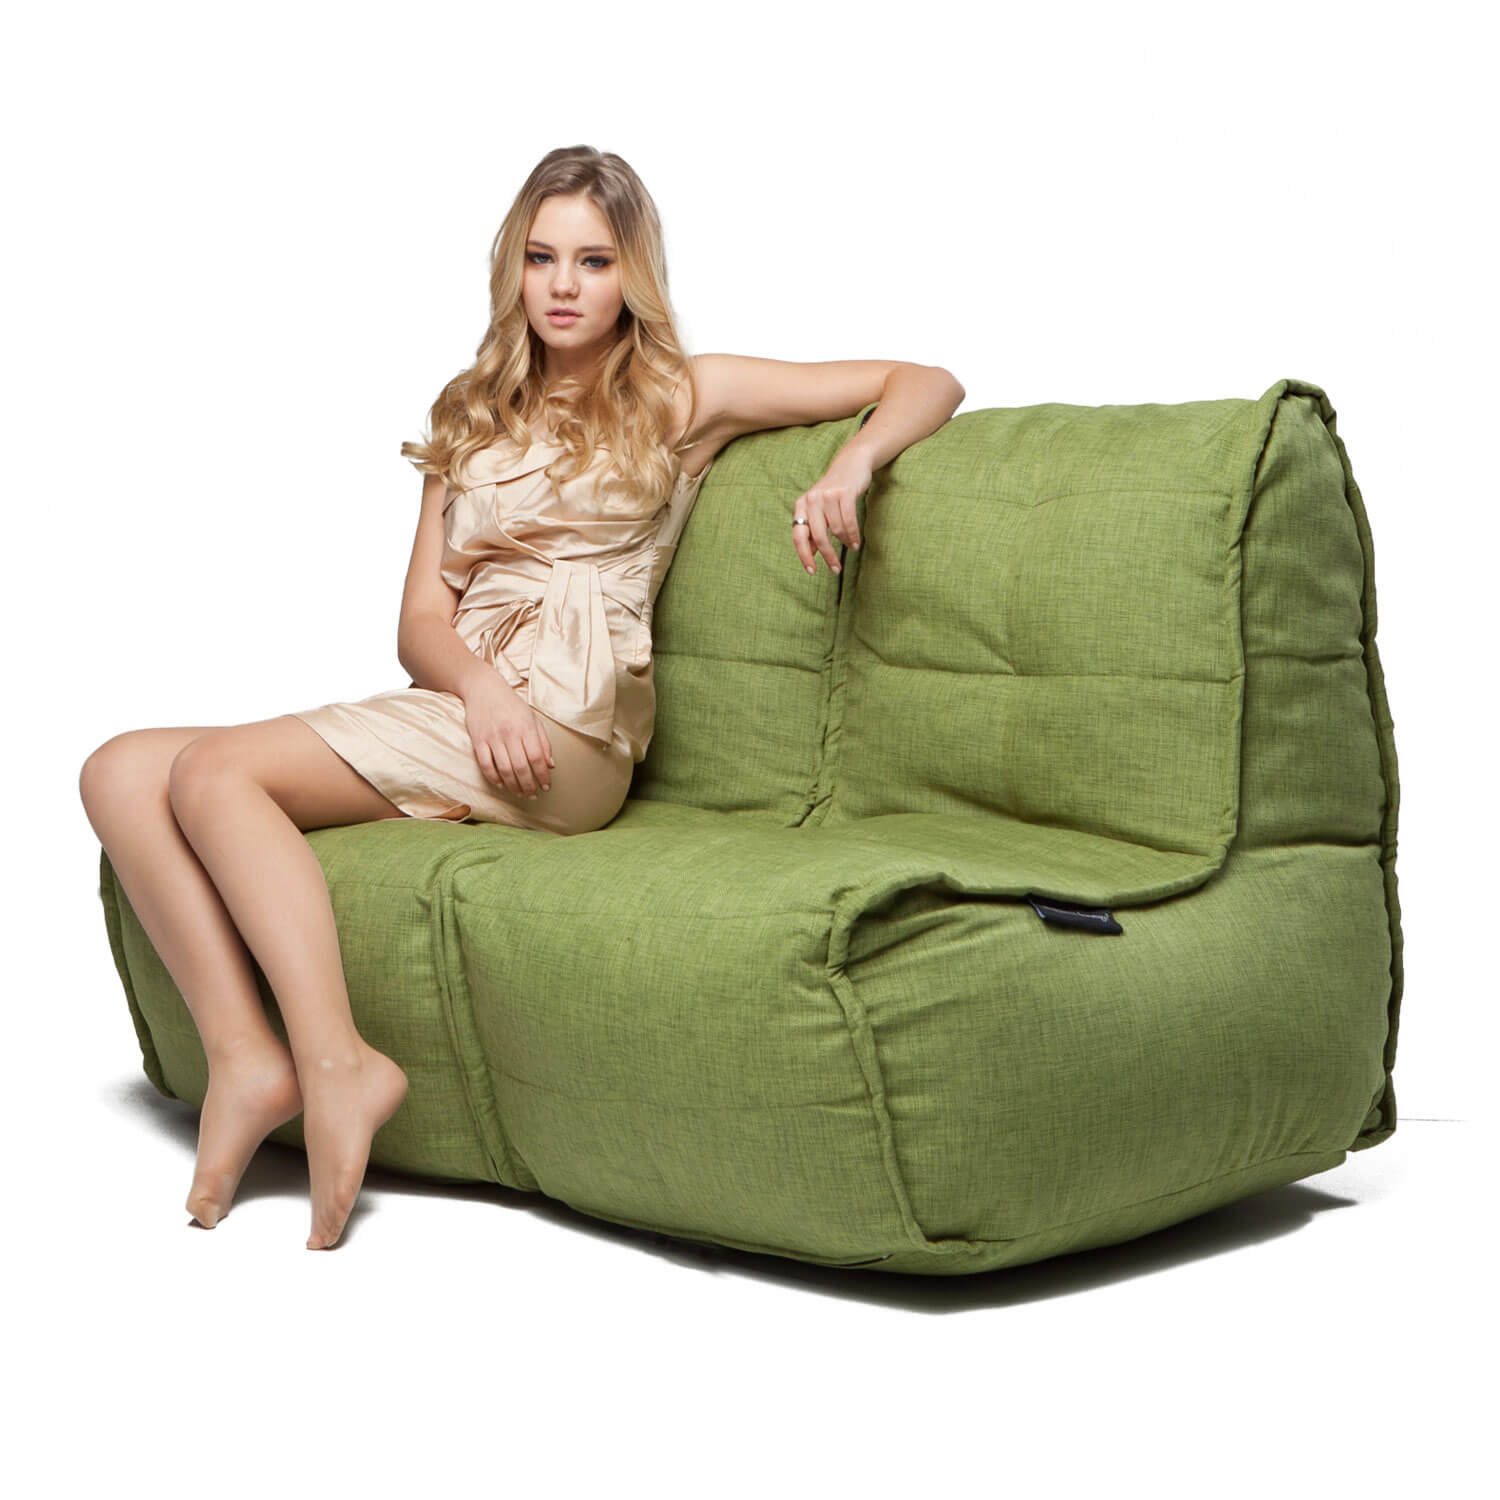 2 Seater Cream Sofa Designer Bean Bag Couch